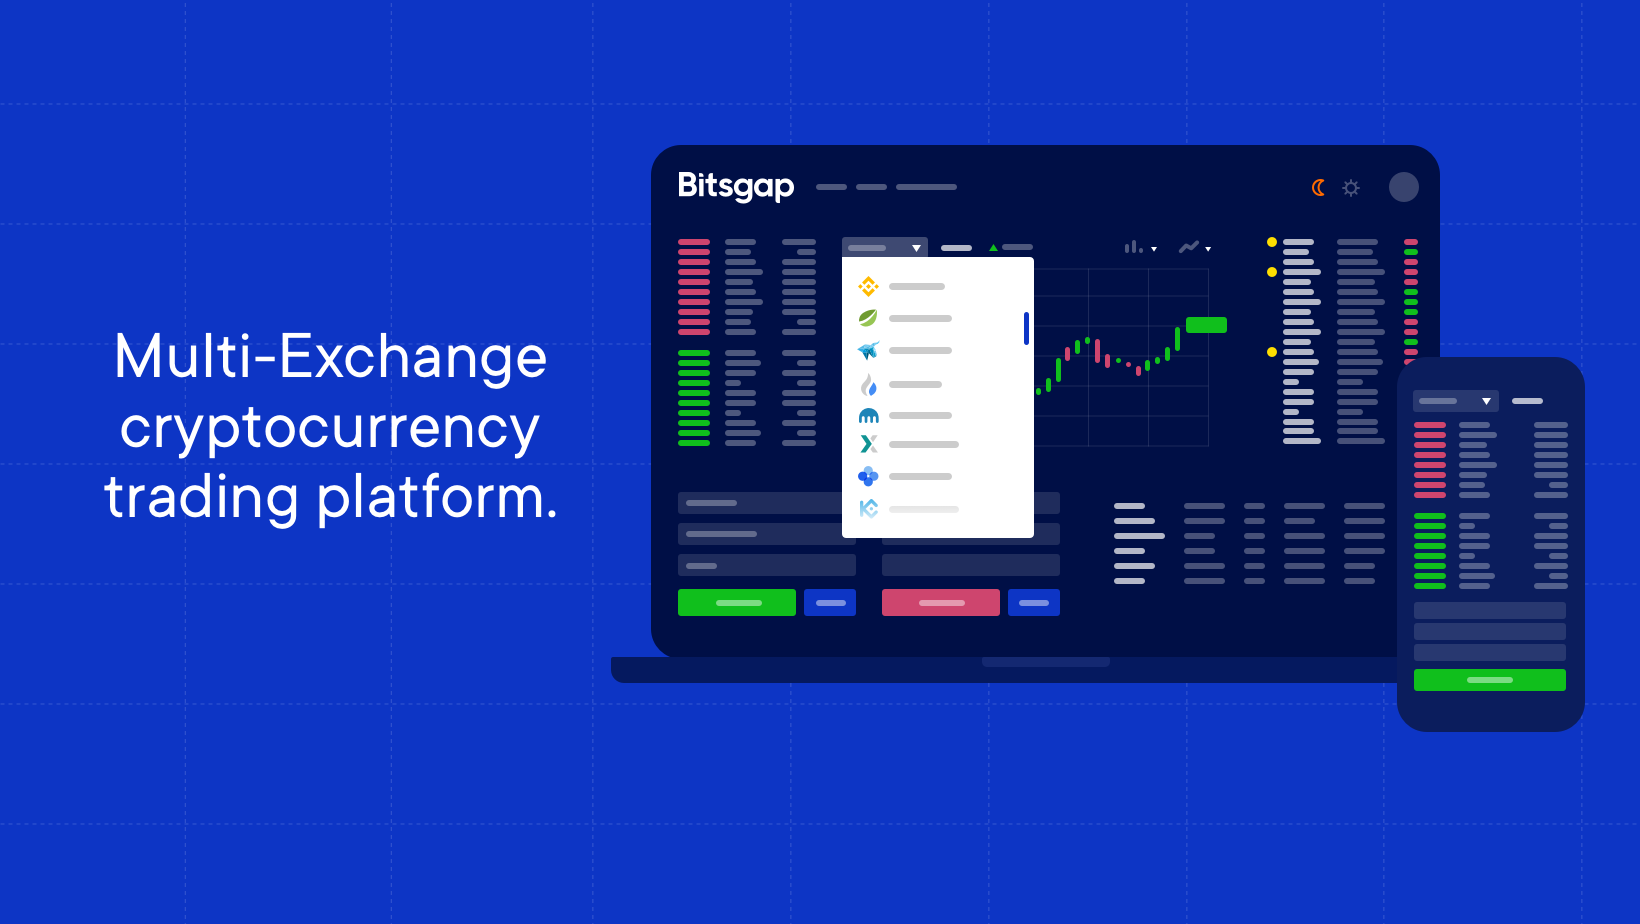 All-in-one trading platform for your Bitcoins and other